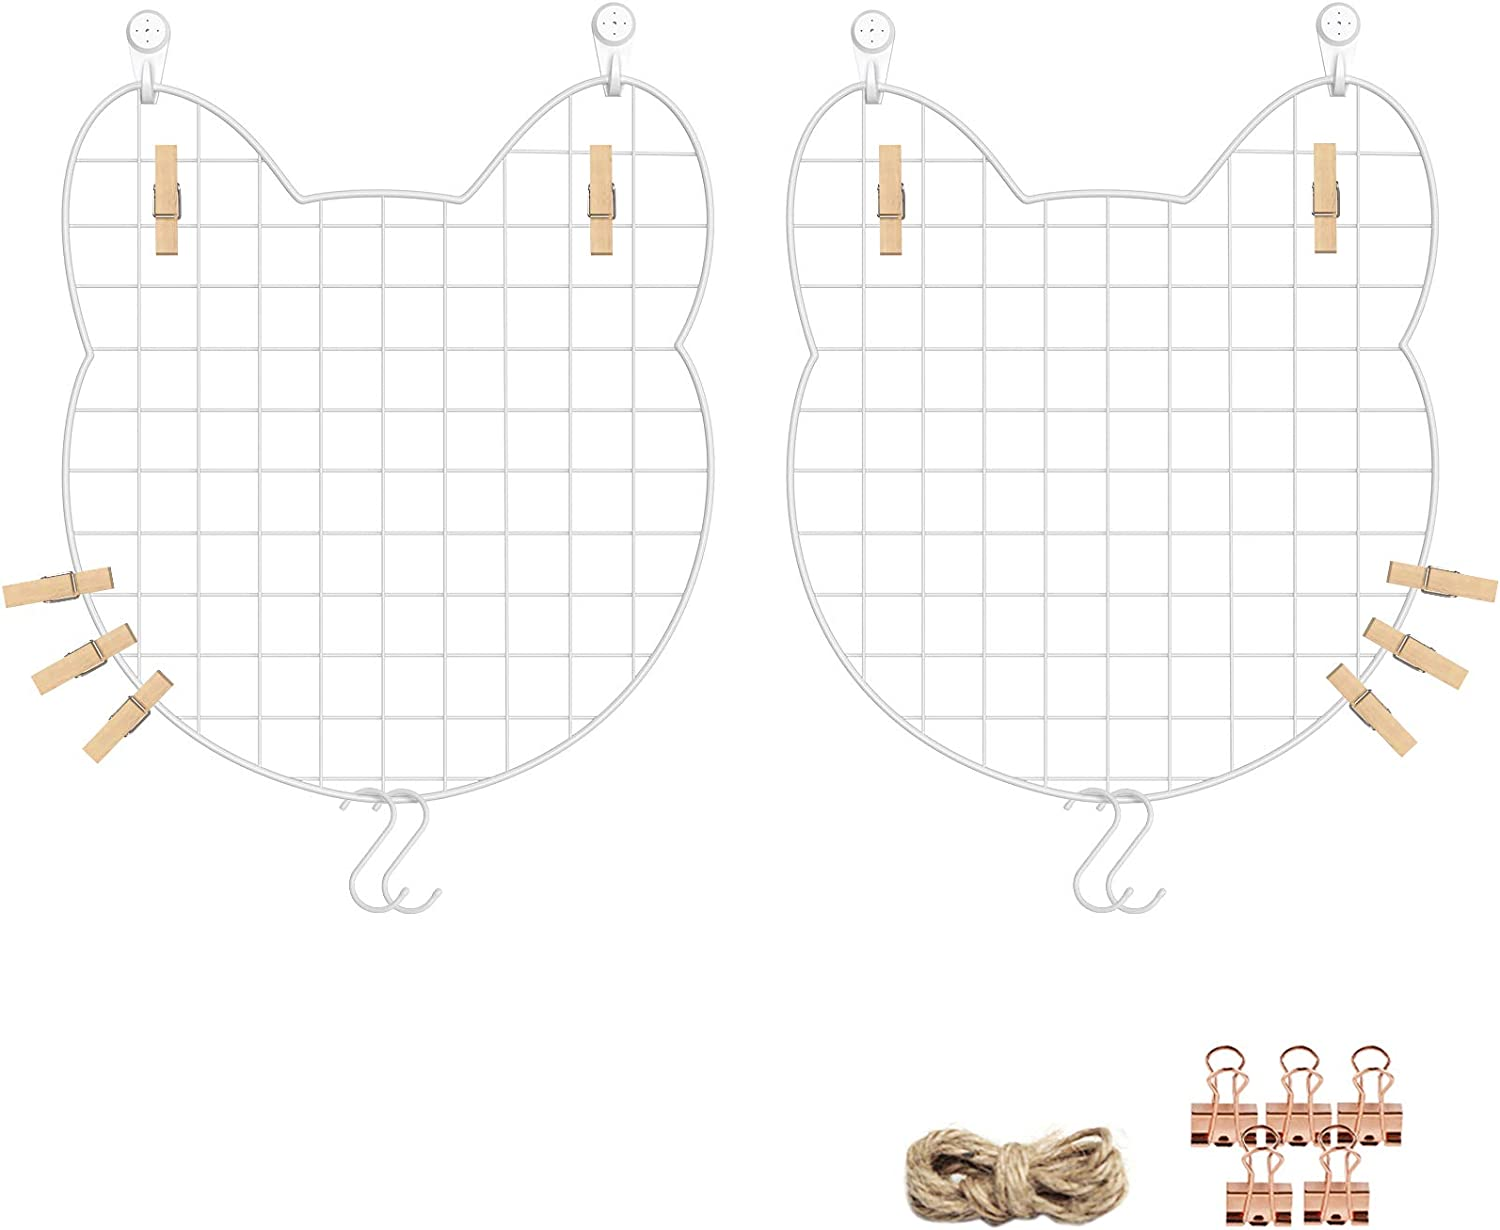 Clips Wall Storage Organizer with Hooks Multifunctional Photo Hanging Display Mallet Cat-Face Shaped Metal Wall Decor White ULPP03W 12.2 x 13.8 Inches Set of 2 SONGMICS Grid Photo Wall